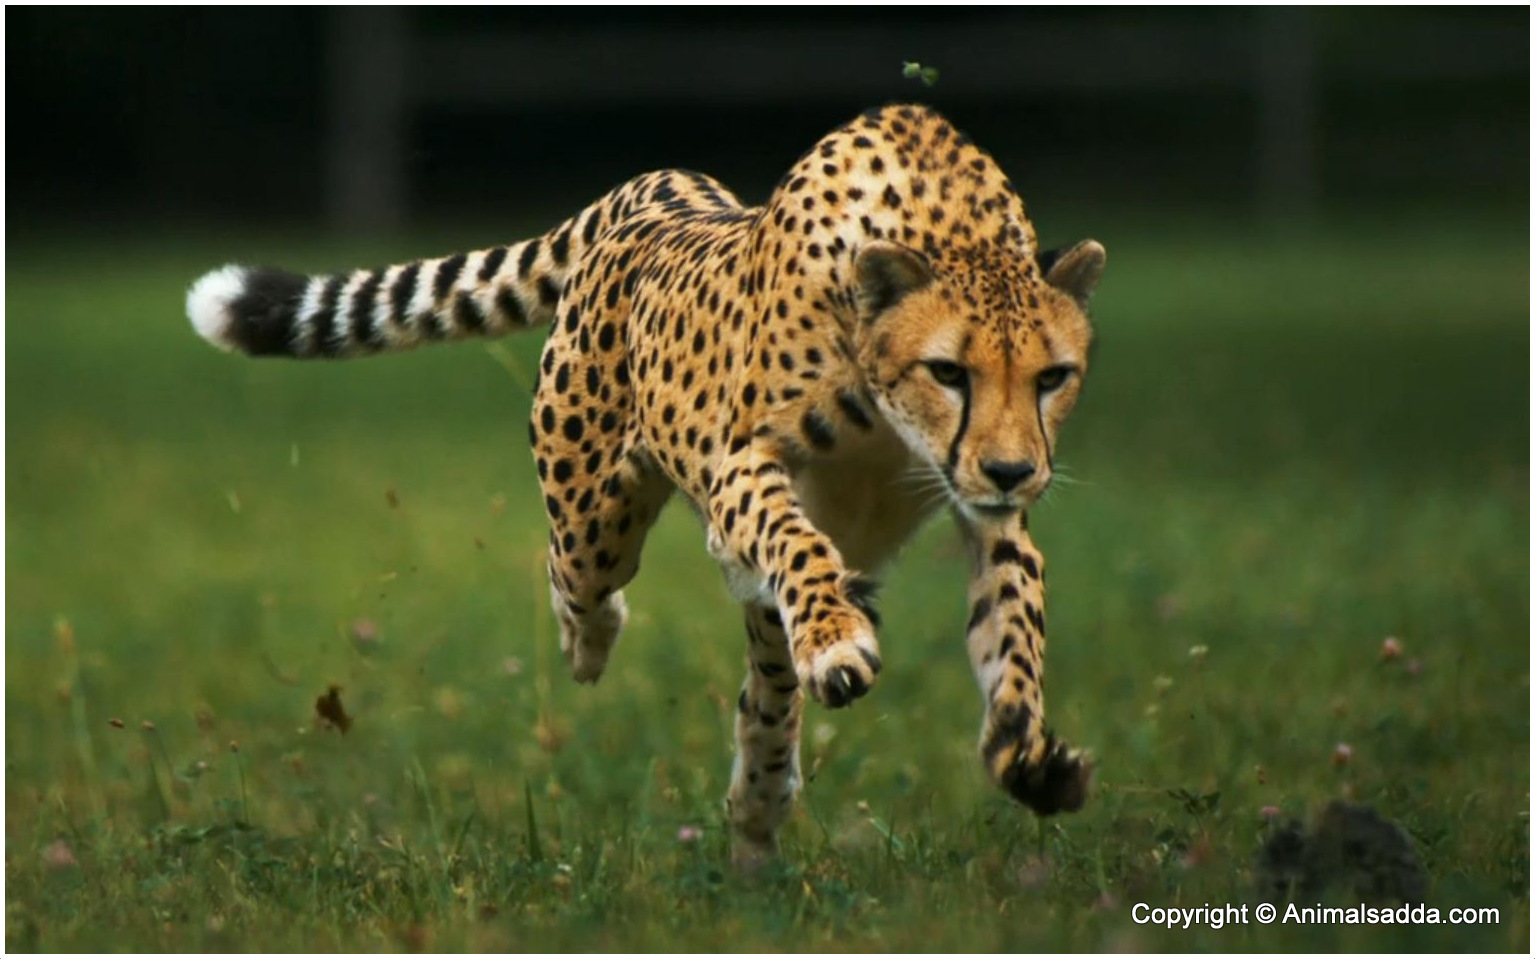 Cheetah - Facts For Kids, Pictures, Diet, Habitat